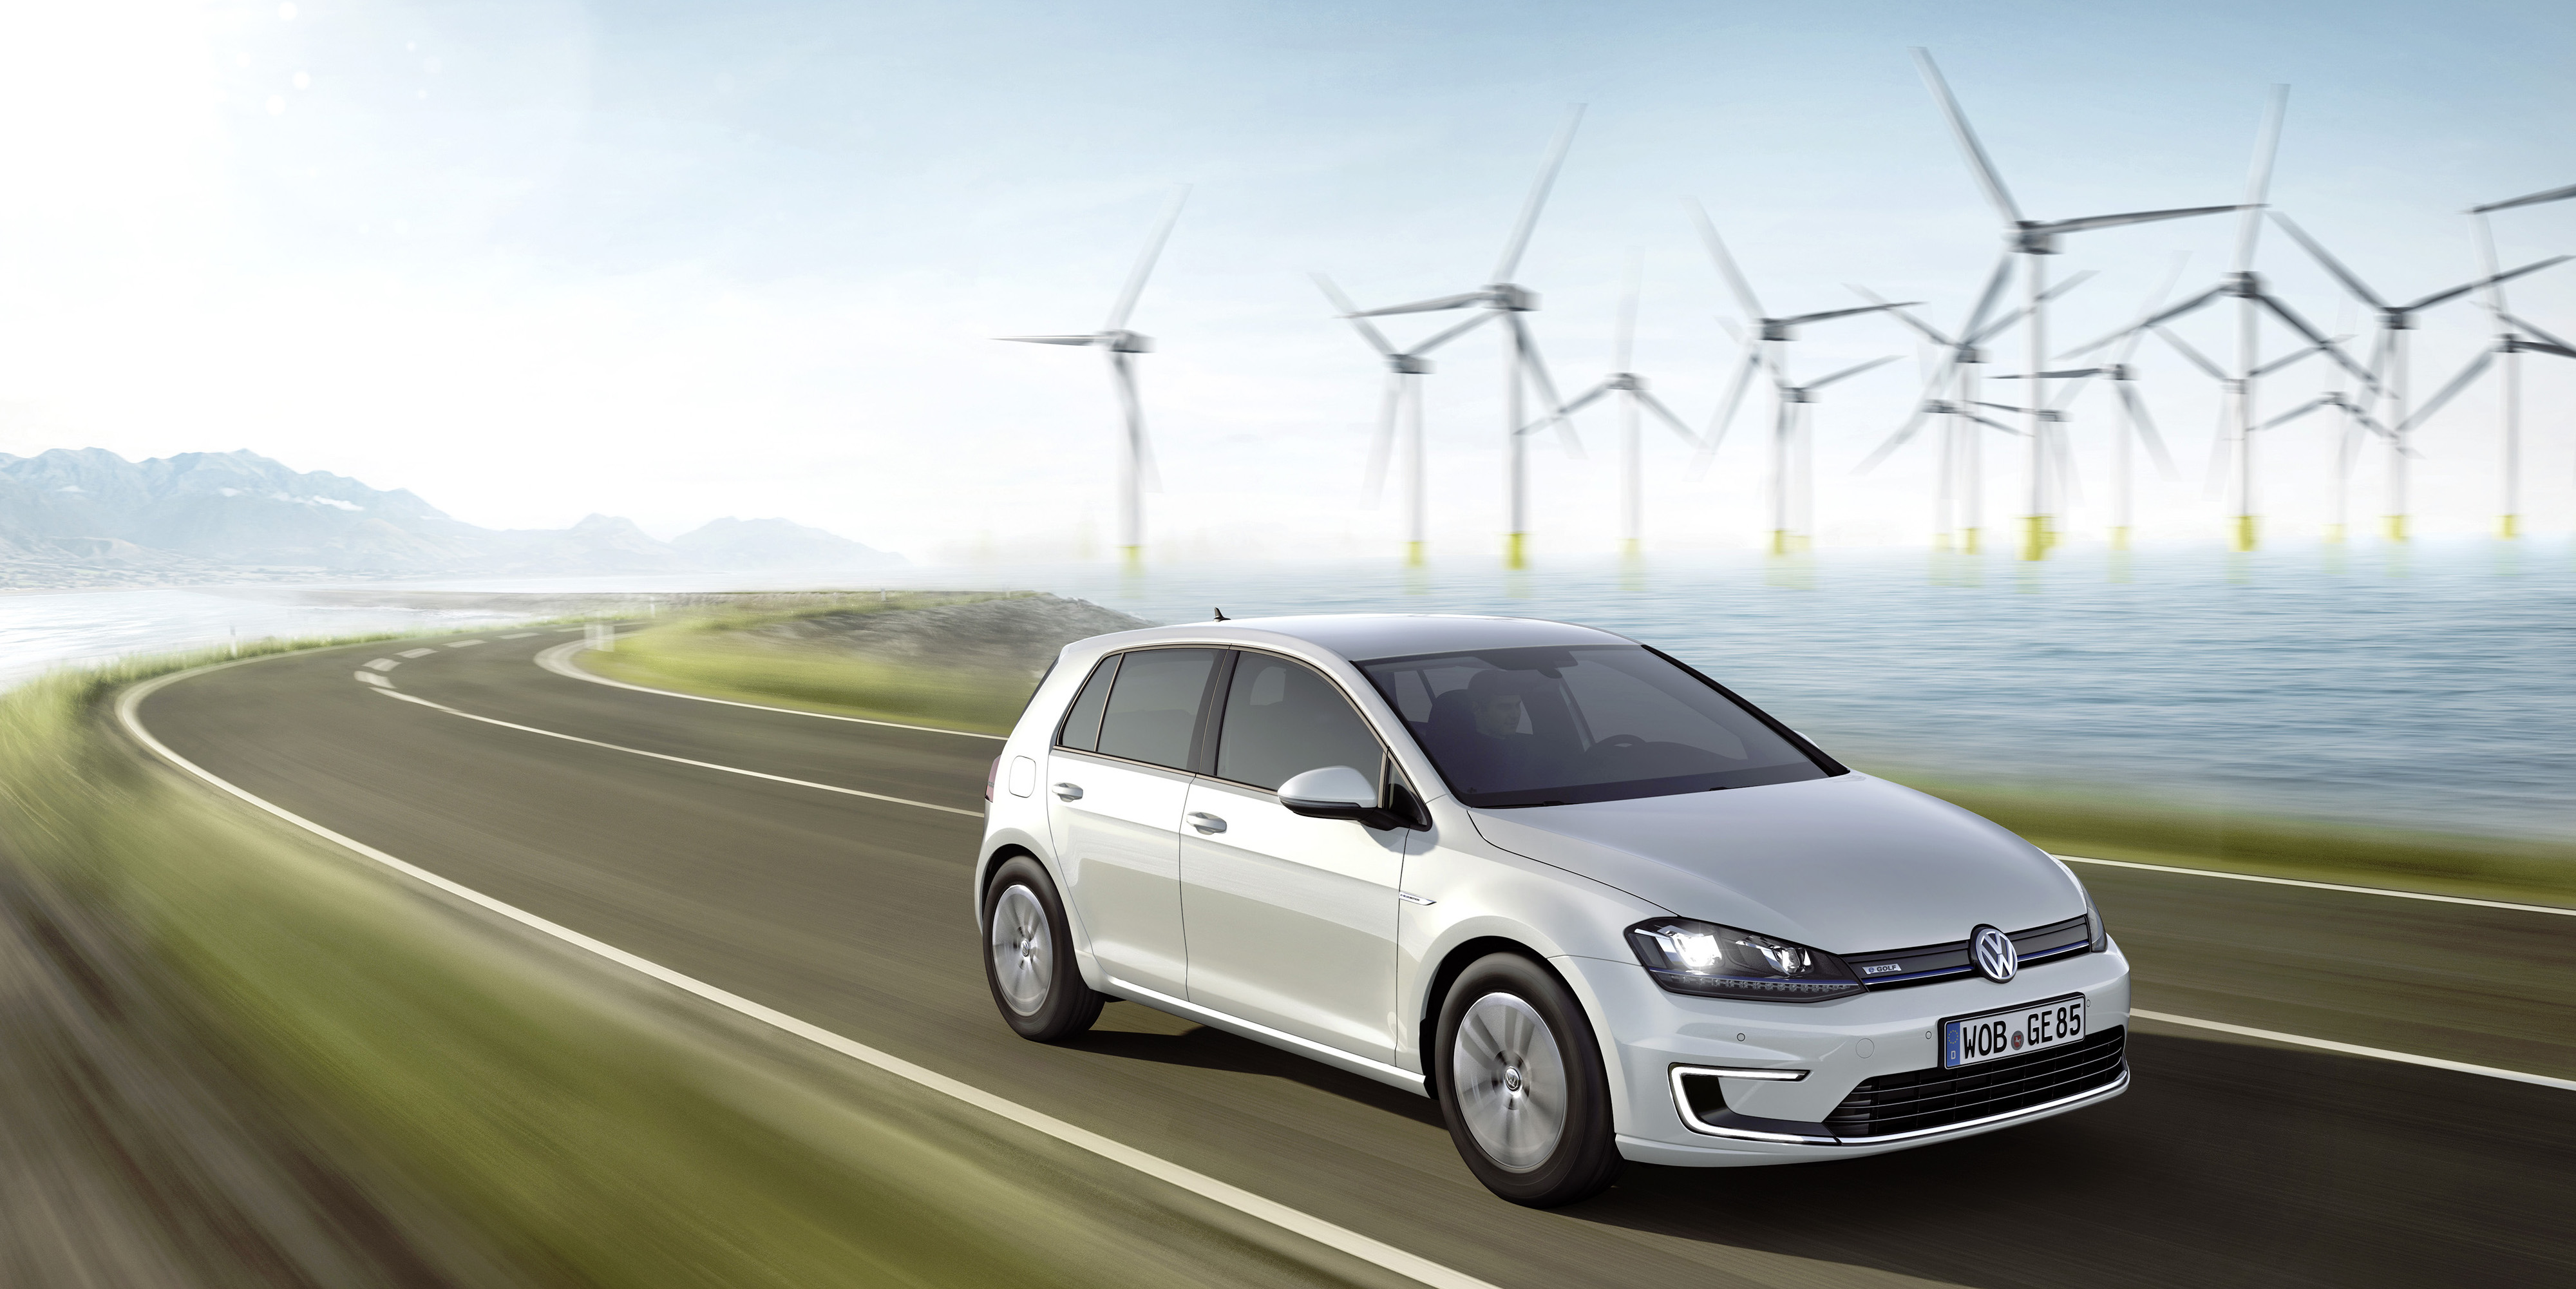 volkswagen egolf carplay - Volkswagen vehicles get Siri Shortcuts and voice control to unlock, flash lights, check mileage, more